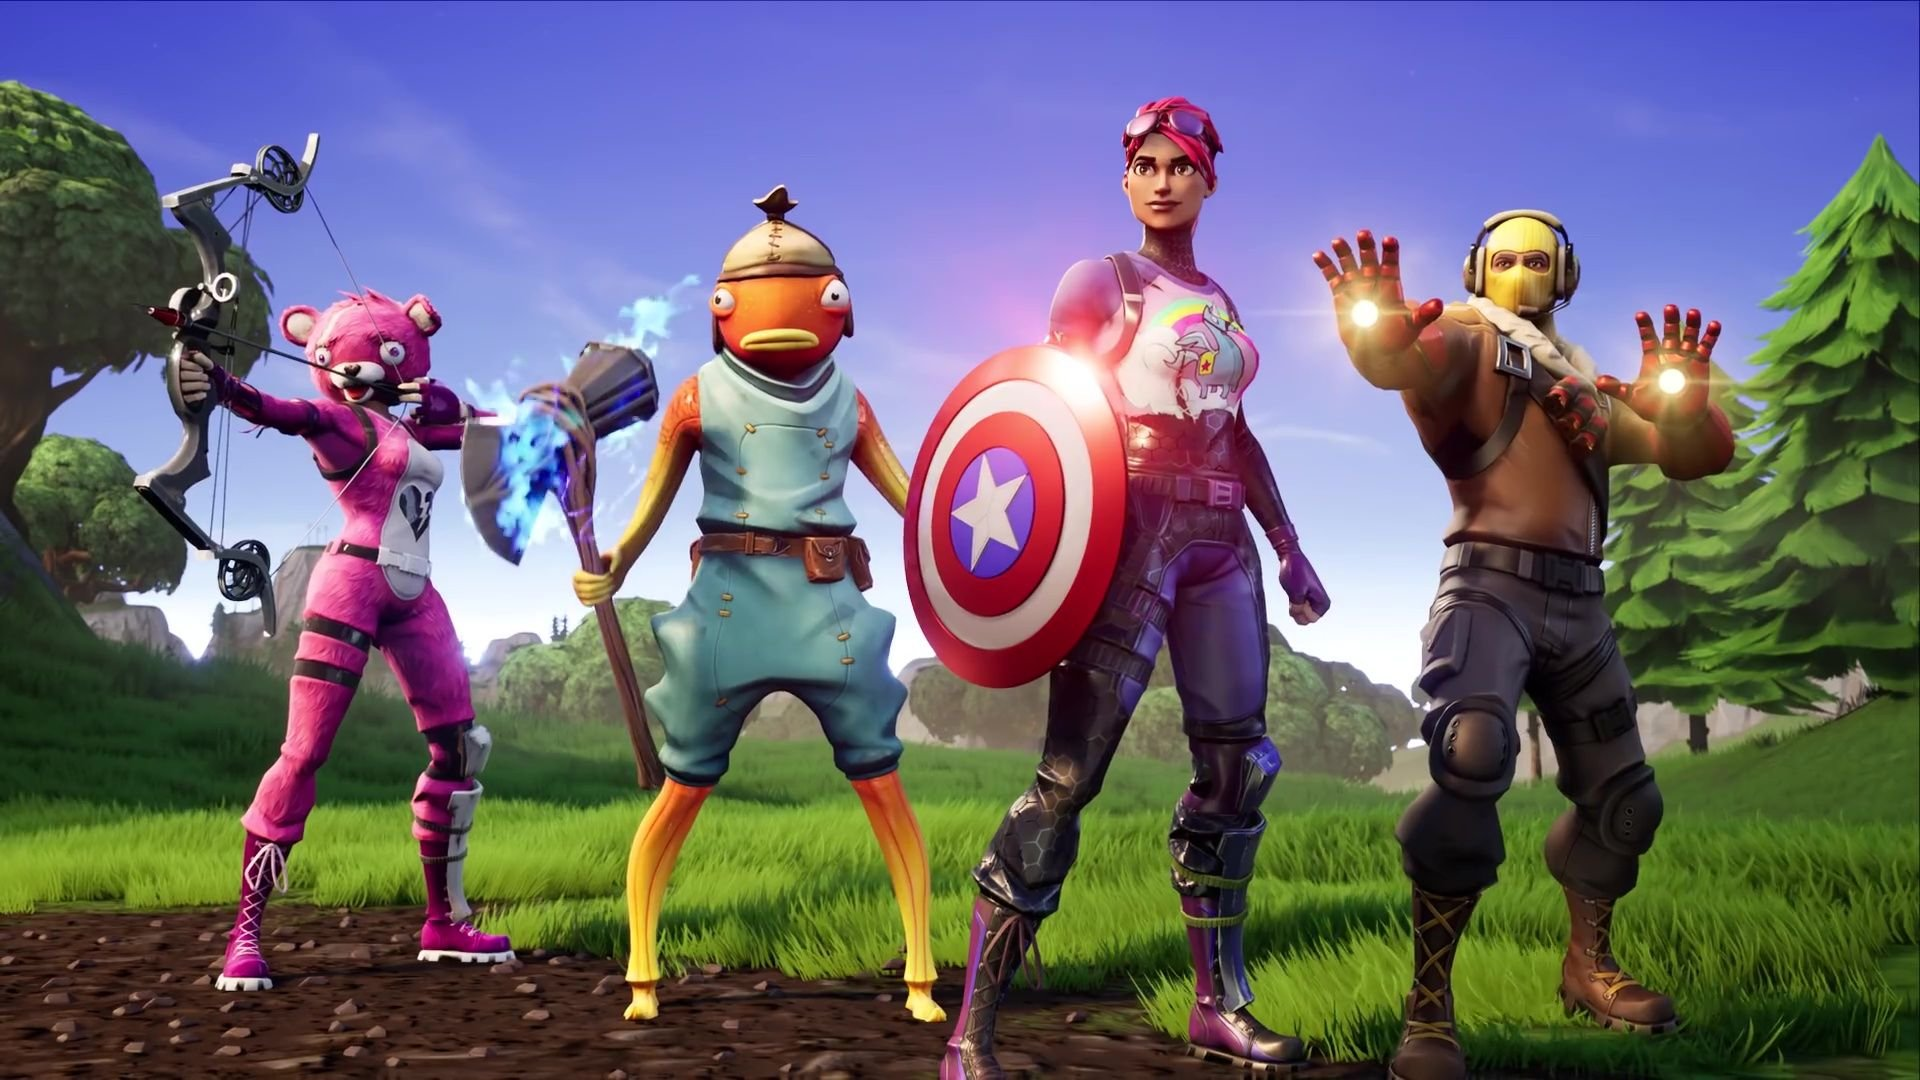 Fortnite lets you fight Thanos with Avengers weapons 1920x1080